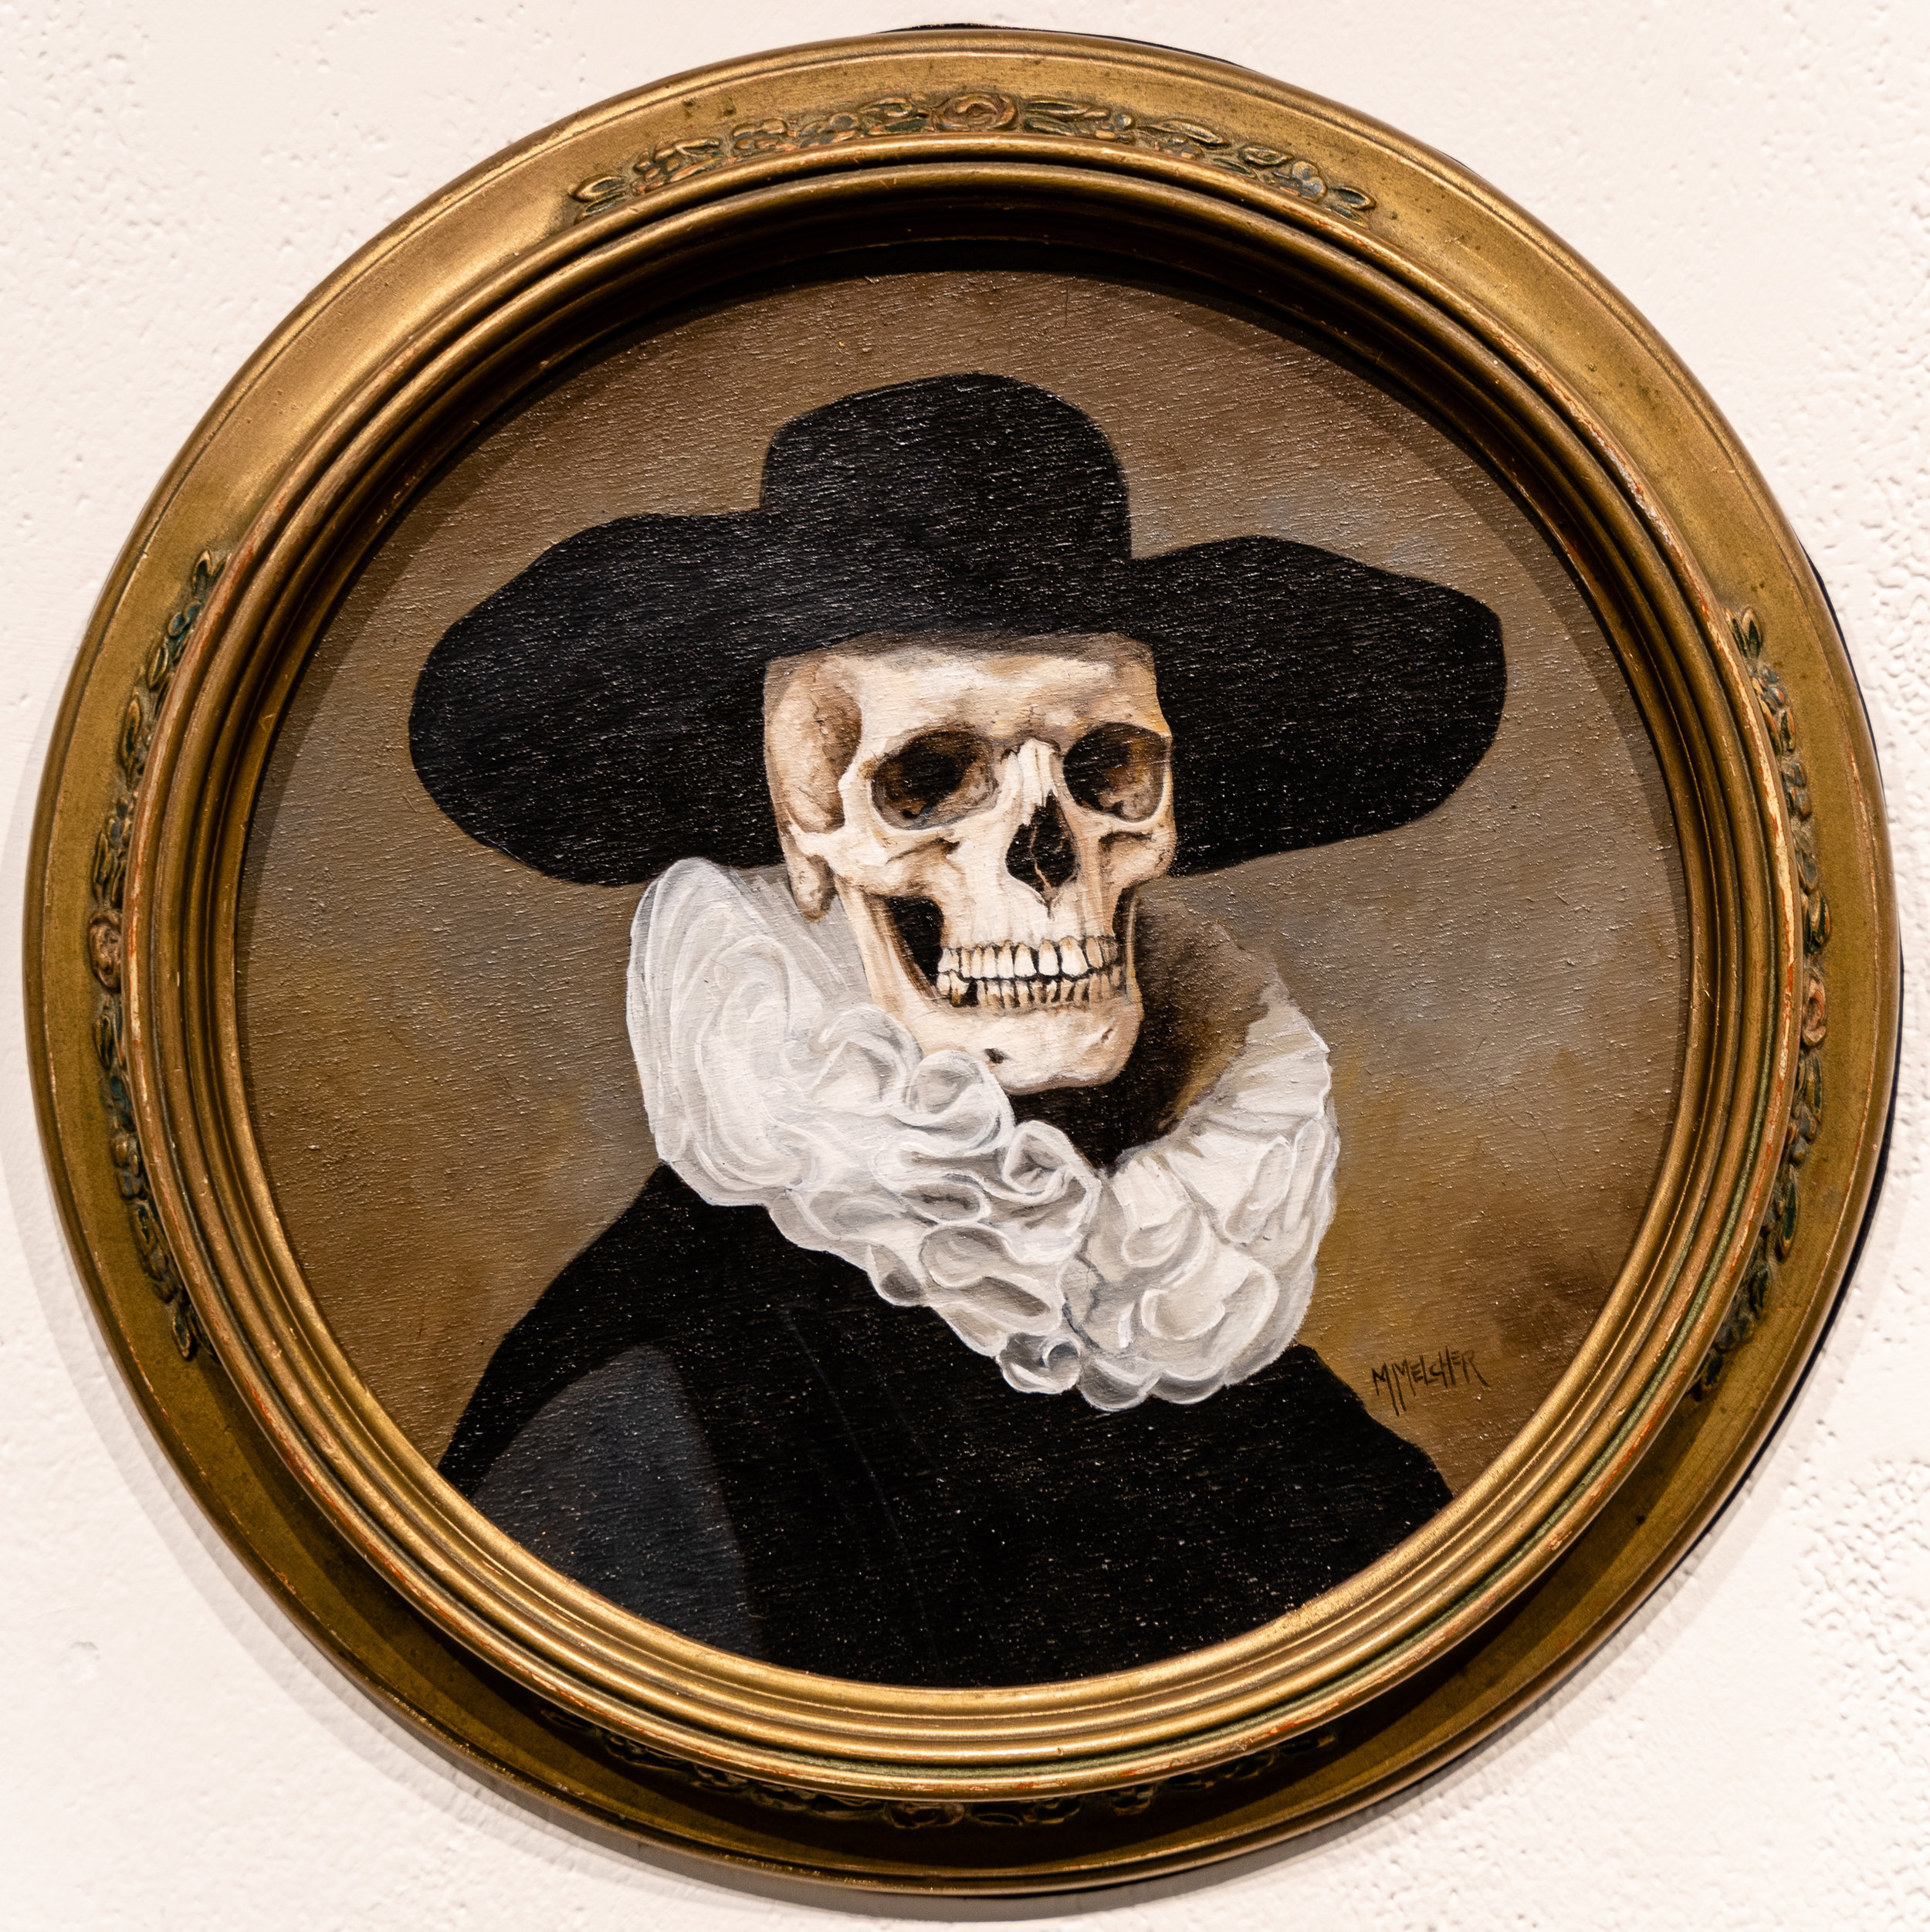 "Man with Hat, 2019, oil on birch wood in antique Victorian frame, 9"" diameter, $850, by Michele Melcher, in the group portrait exhibition Onward at La Luz de Jesus gallery in Los Angeles on Friday, May 3, 2019. Melcher's husband Brian Isserman described that they shop for the antique frames first, then prepare a wood panel to fit the frame, and then Melcher begins her painting. Two shows are running at La Luz de Jesus from May 3 to June 2: Matthew Couper's solo exhibition In Memory of Water, and the group portrait show Onward featuring artists Michele Melcher, Baldur Helgason, Yeo Kaa, Valery Pobjoy, and Sung Jik Yang. (Glenn Zucman/The Corsair)"